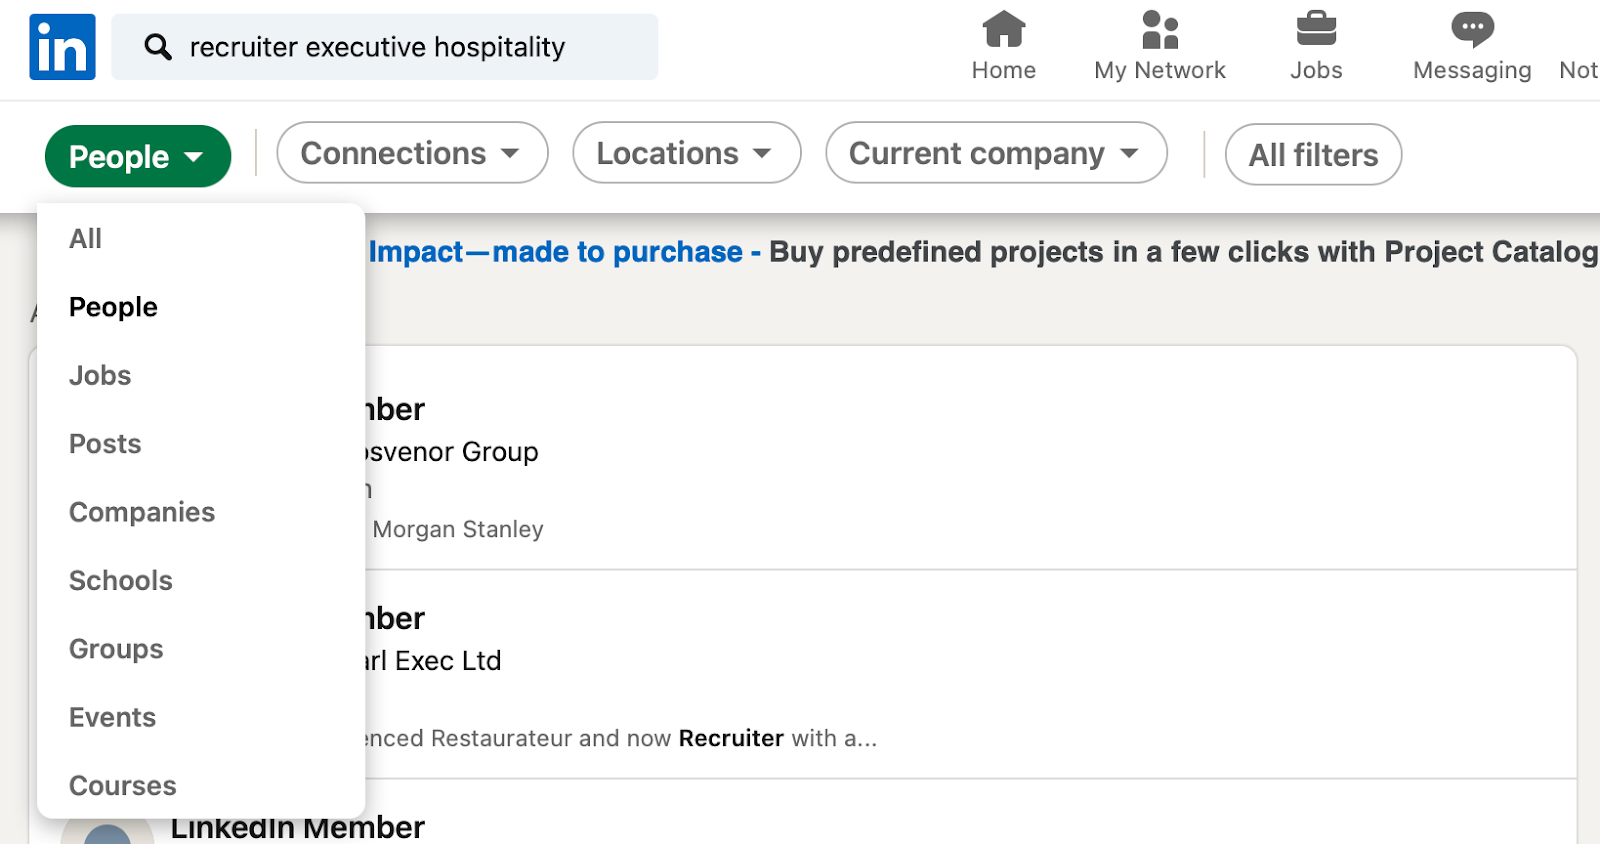 How to search for external recruiters on LinkedIn